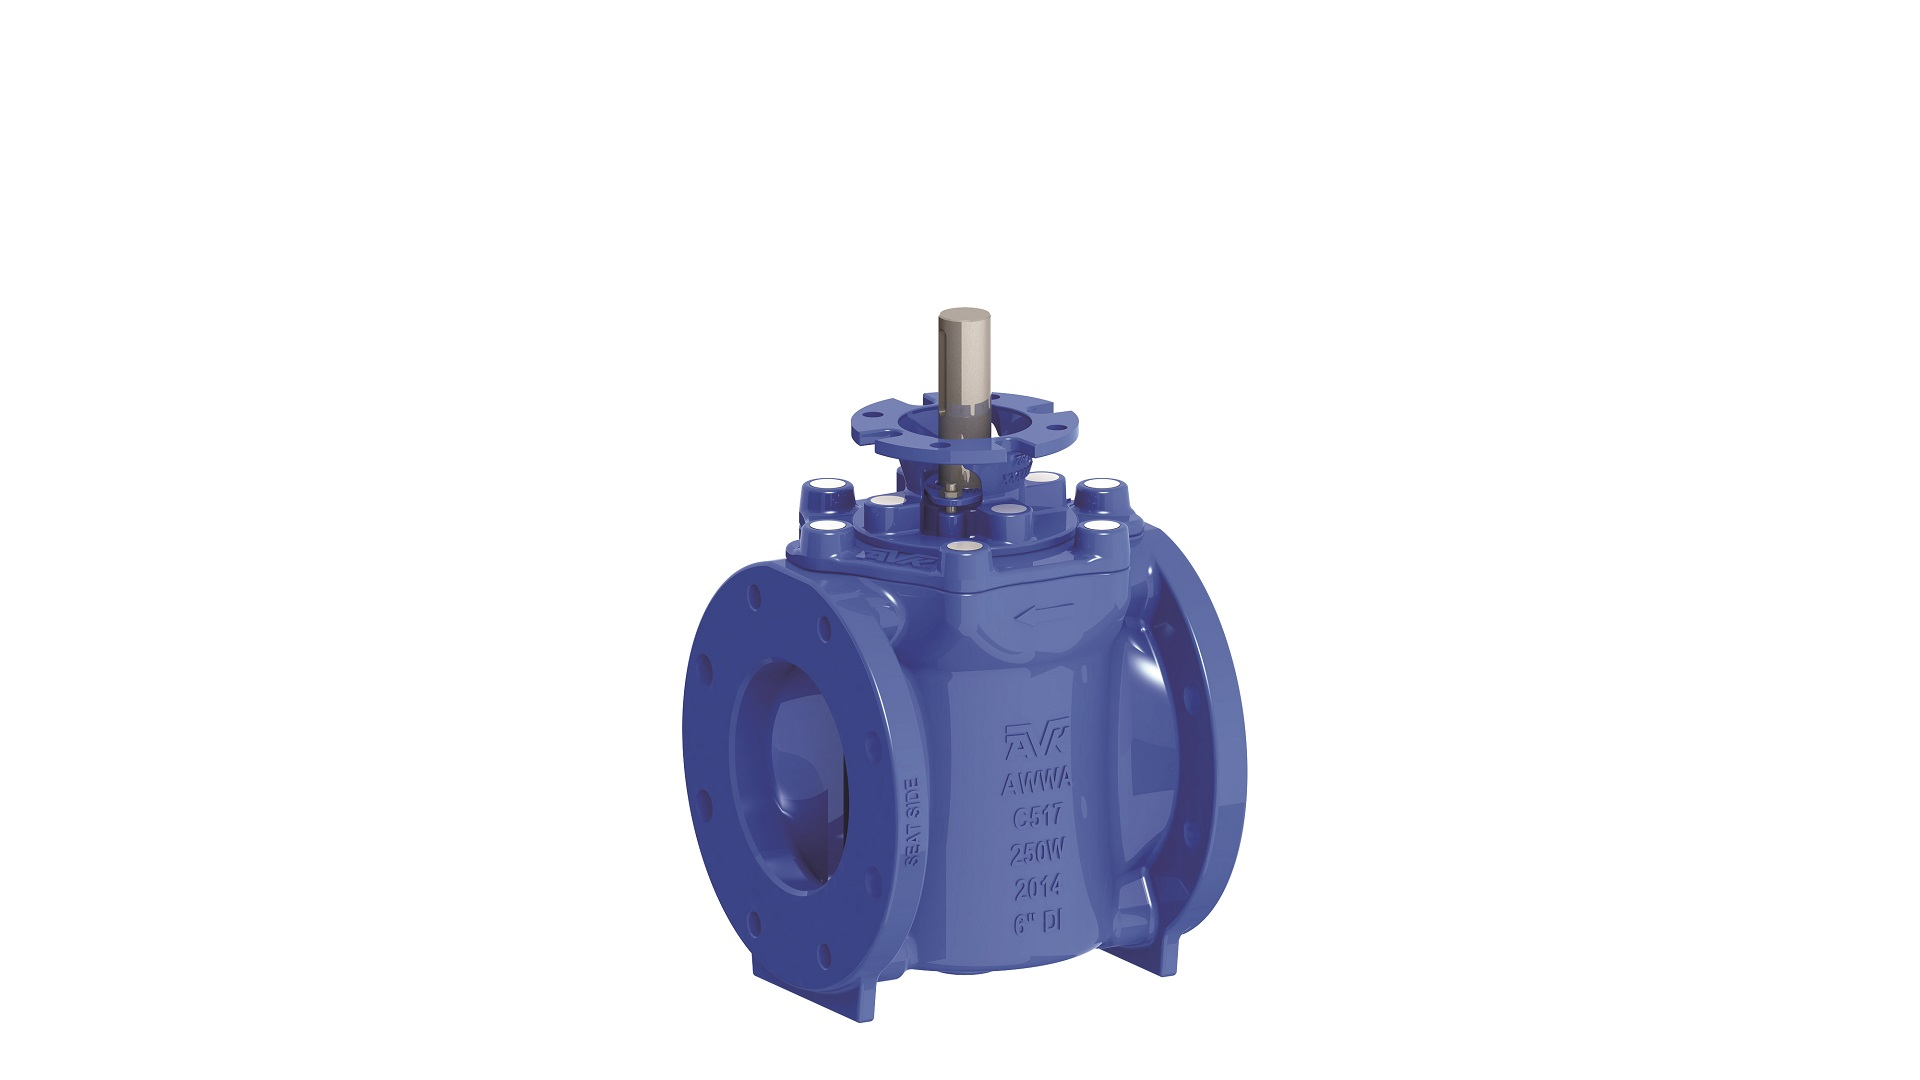 AVK Water and Waste Plug Valves